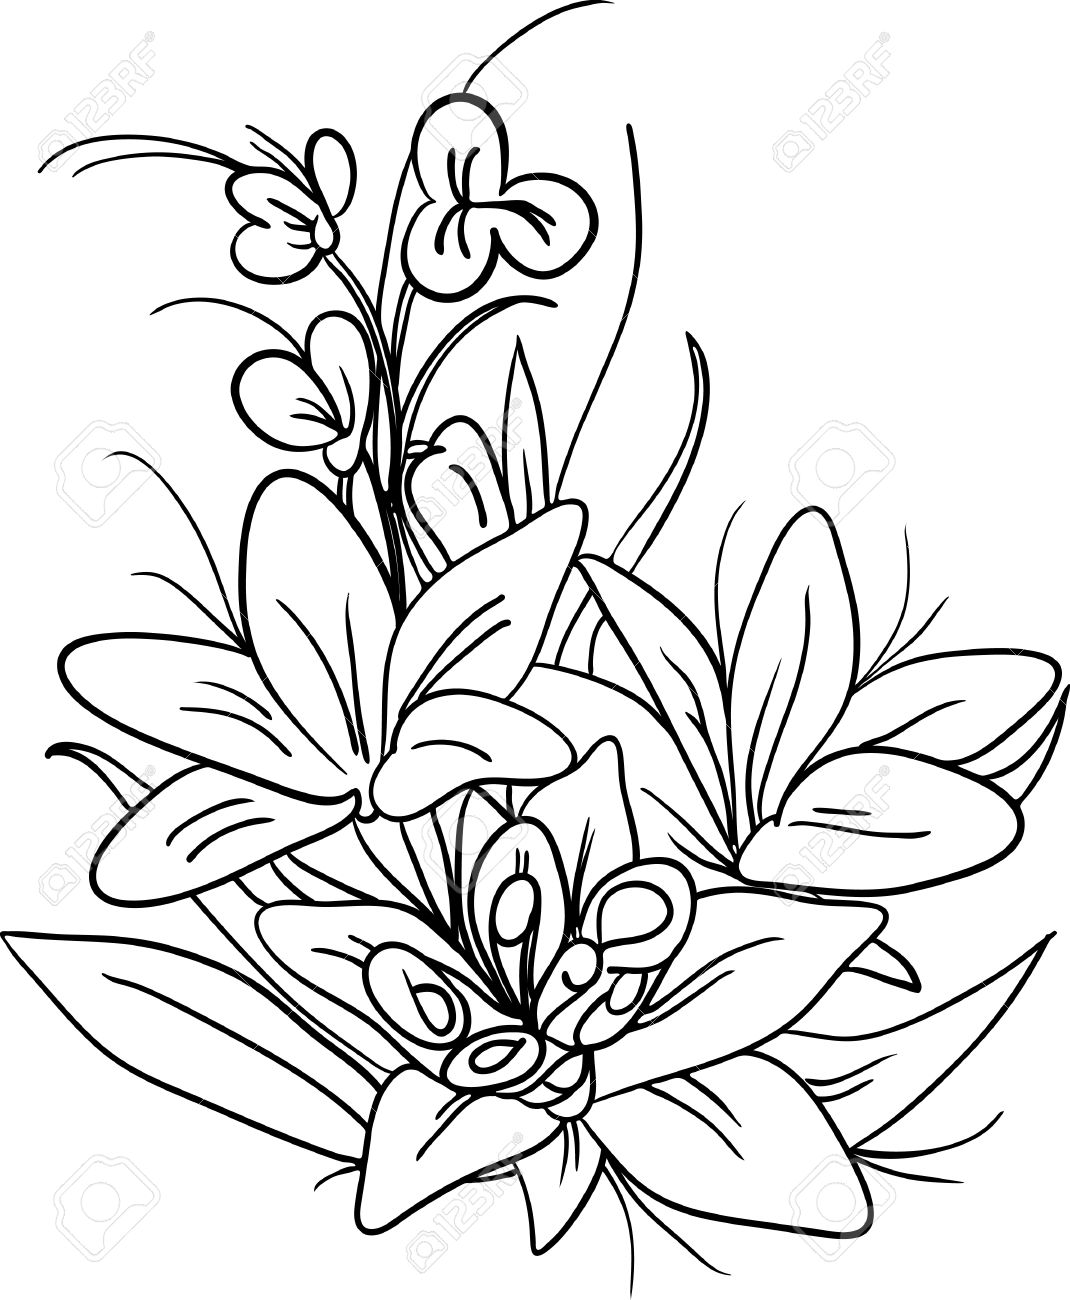 Bouquet of flowers drawing black and white flowers ideas bouquet flowers drawing at getdrawings free for personal use 1070x1300 bouquet of flowers drawing black and white mightylinksfo Gallery